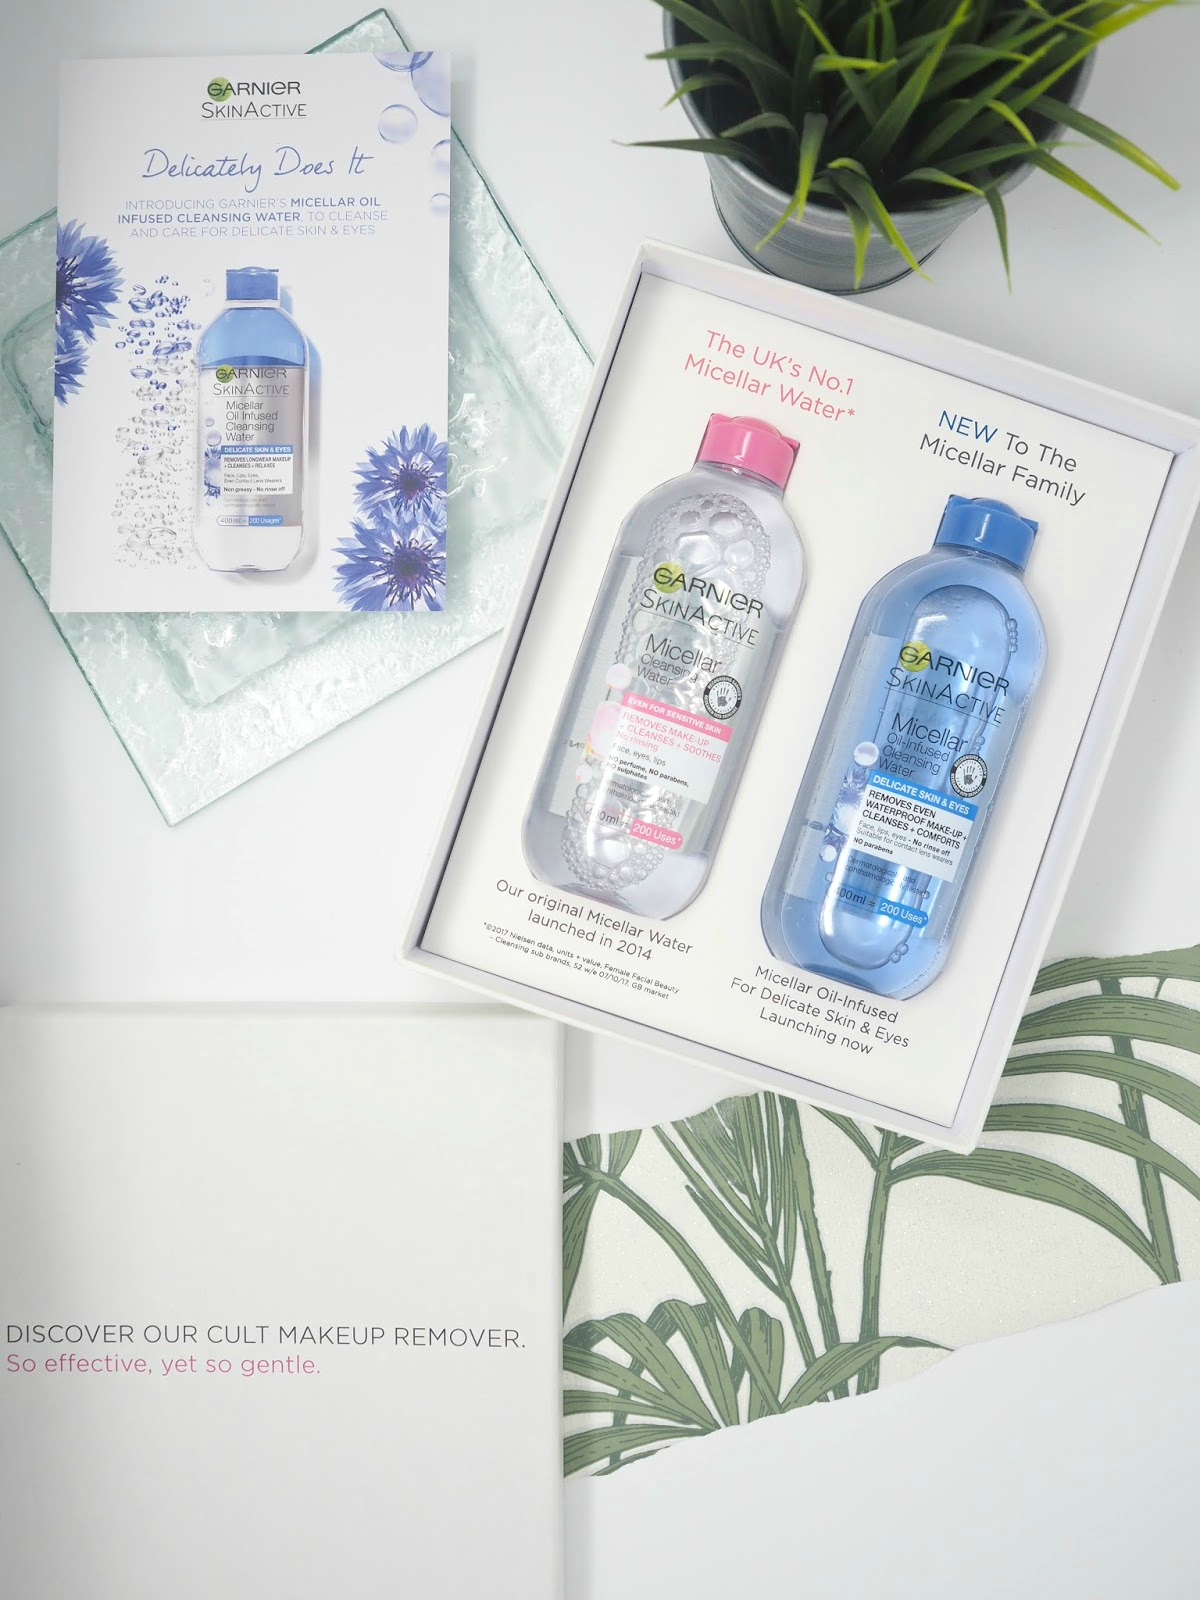 Garnier Micellar Water Delicate Flatlay blog review